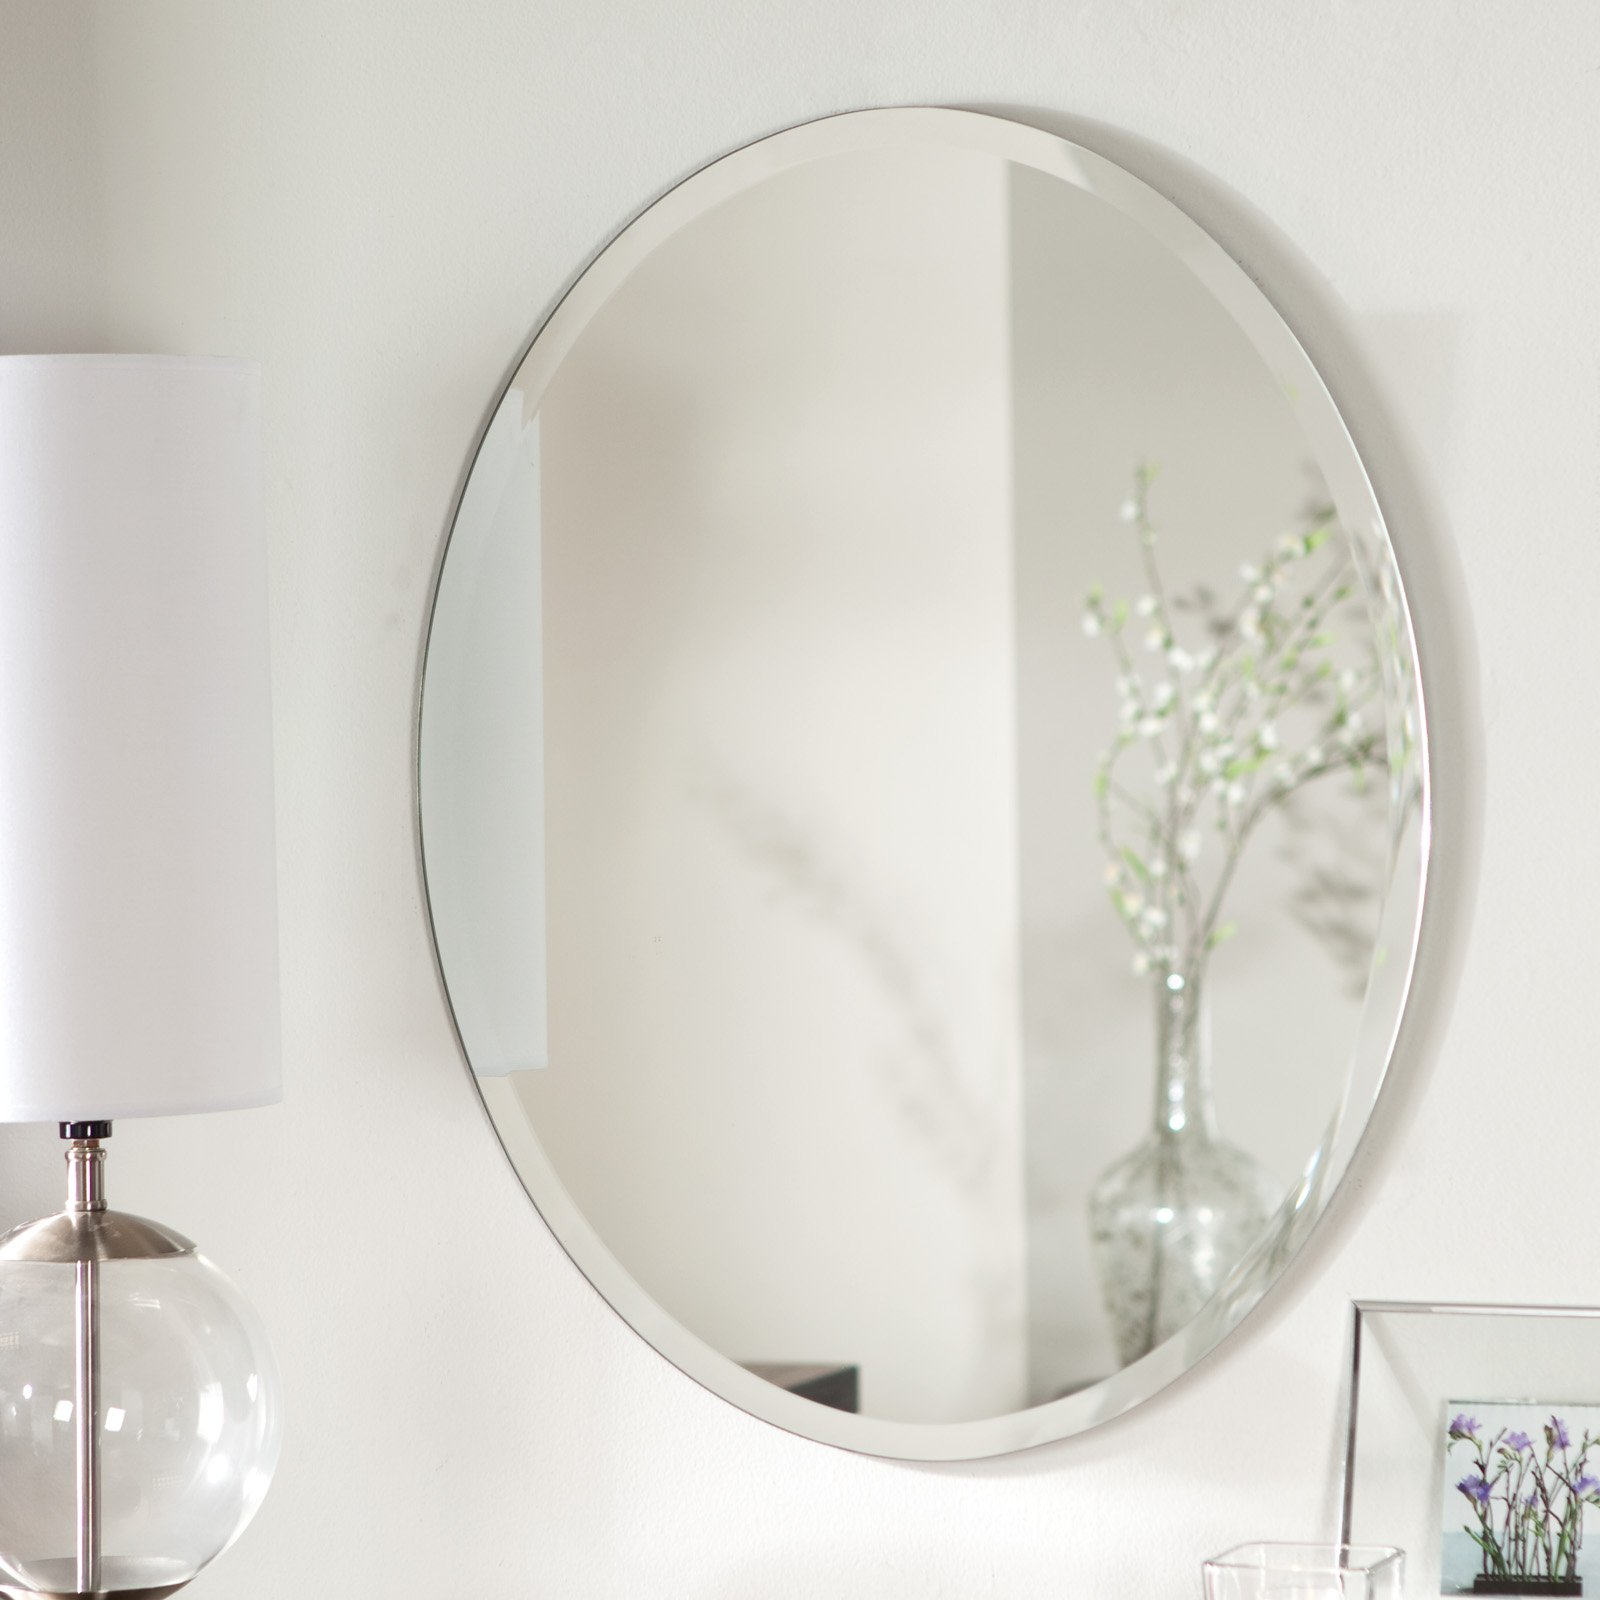 Décor Wonderland Odelia Oval Bevel Frameless Wall Mirror 22W x 28H in. by Decor Wonderland of US